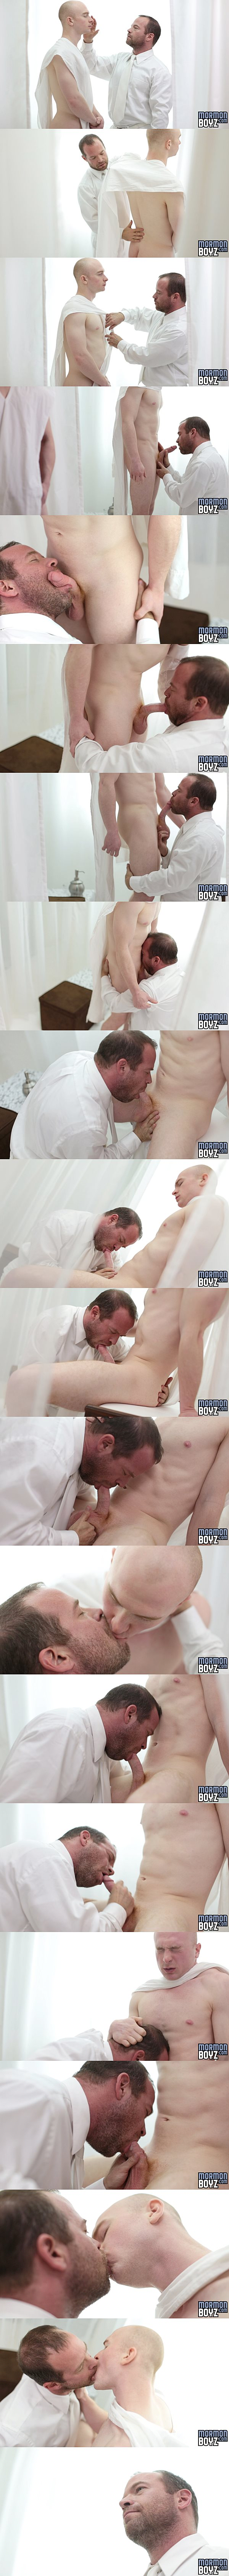 President Woodruff explores Elder Larsen's naked body and deep-throats Larsen's cock until Larsen cums in Woodruff's mouth in Initiation at Mormonboyz 02